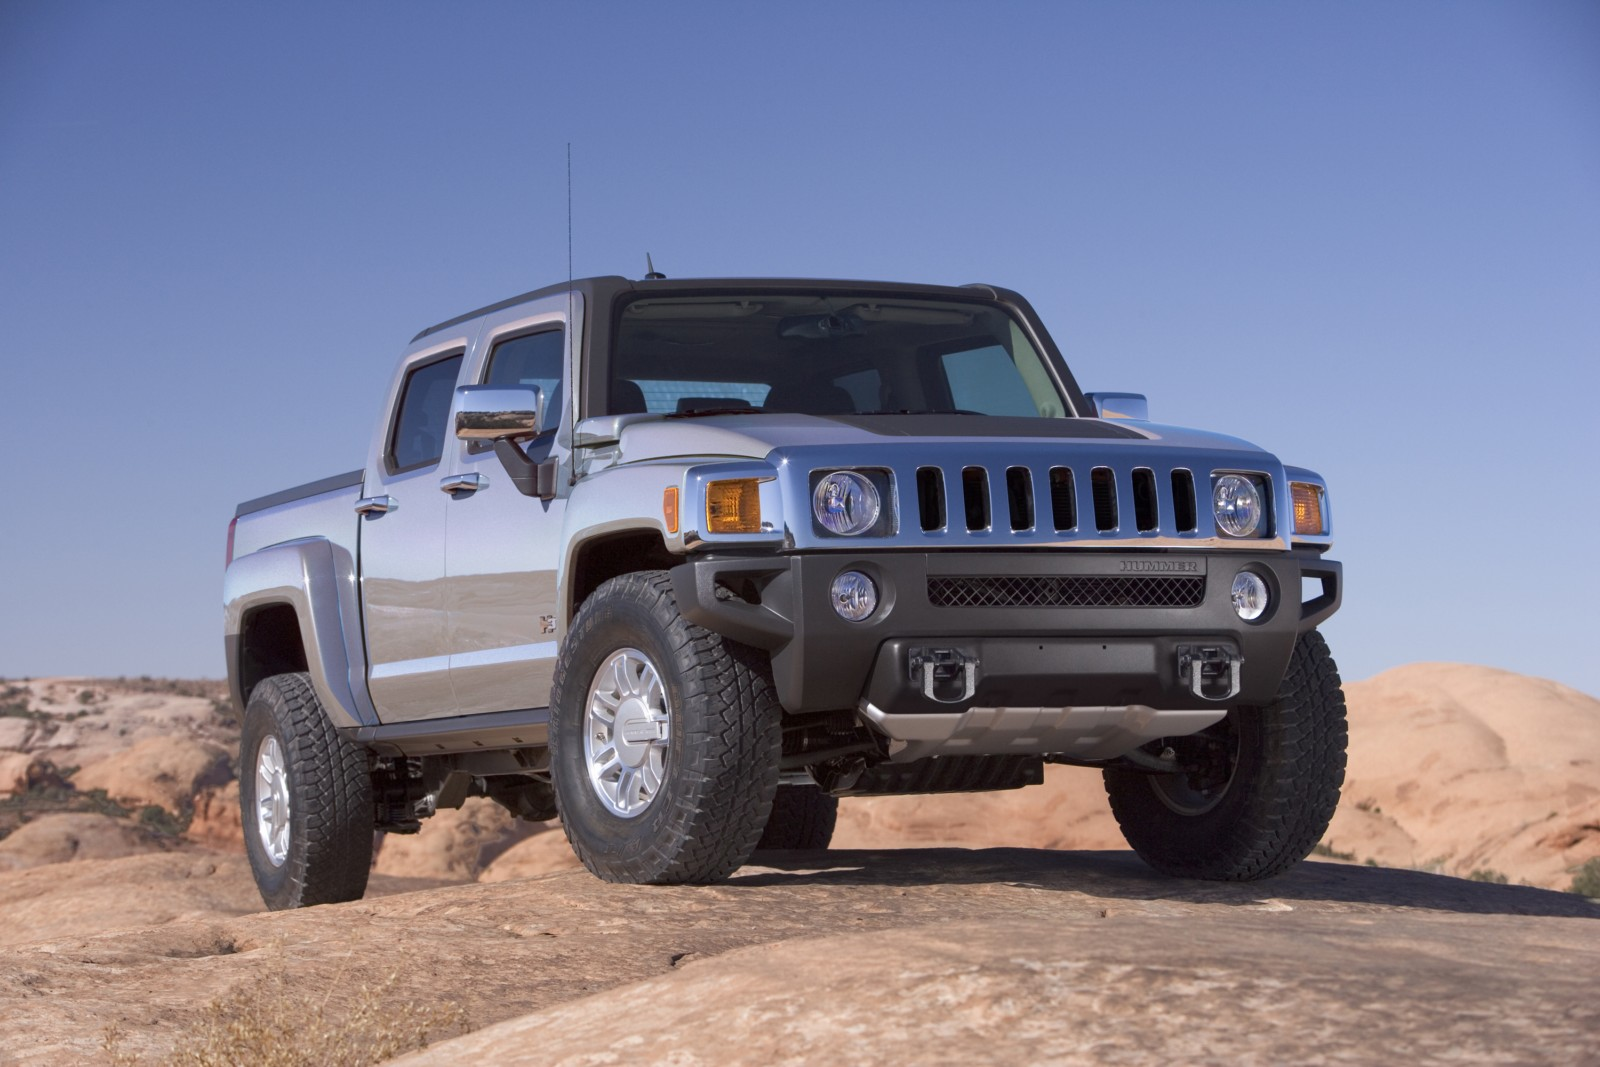 2010 hummer h3 suv review ratings specs prices and photos 2010 hummer h3 suv review ratings specs prices and photos the car connection vanachro Choice Image